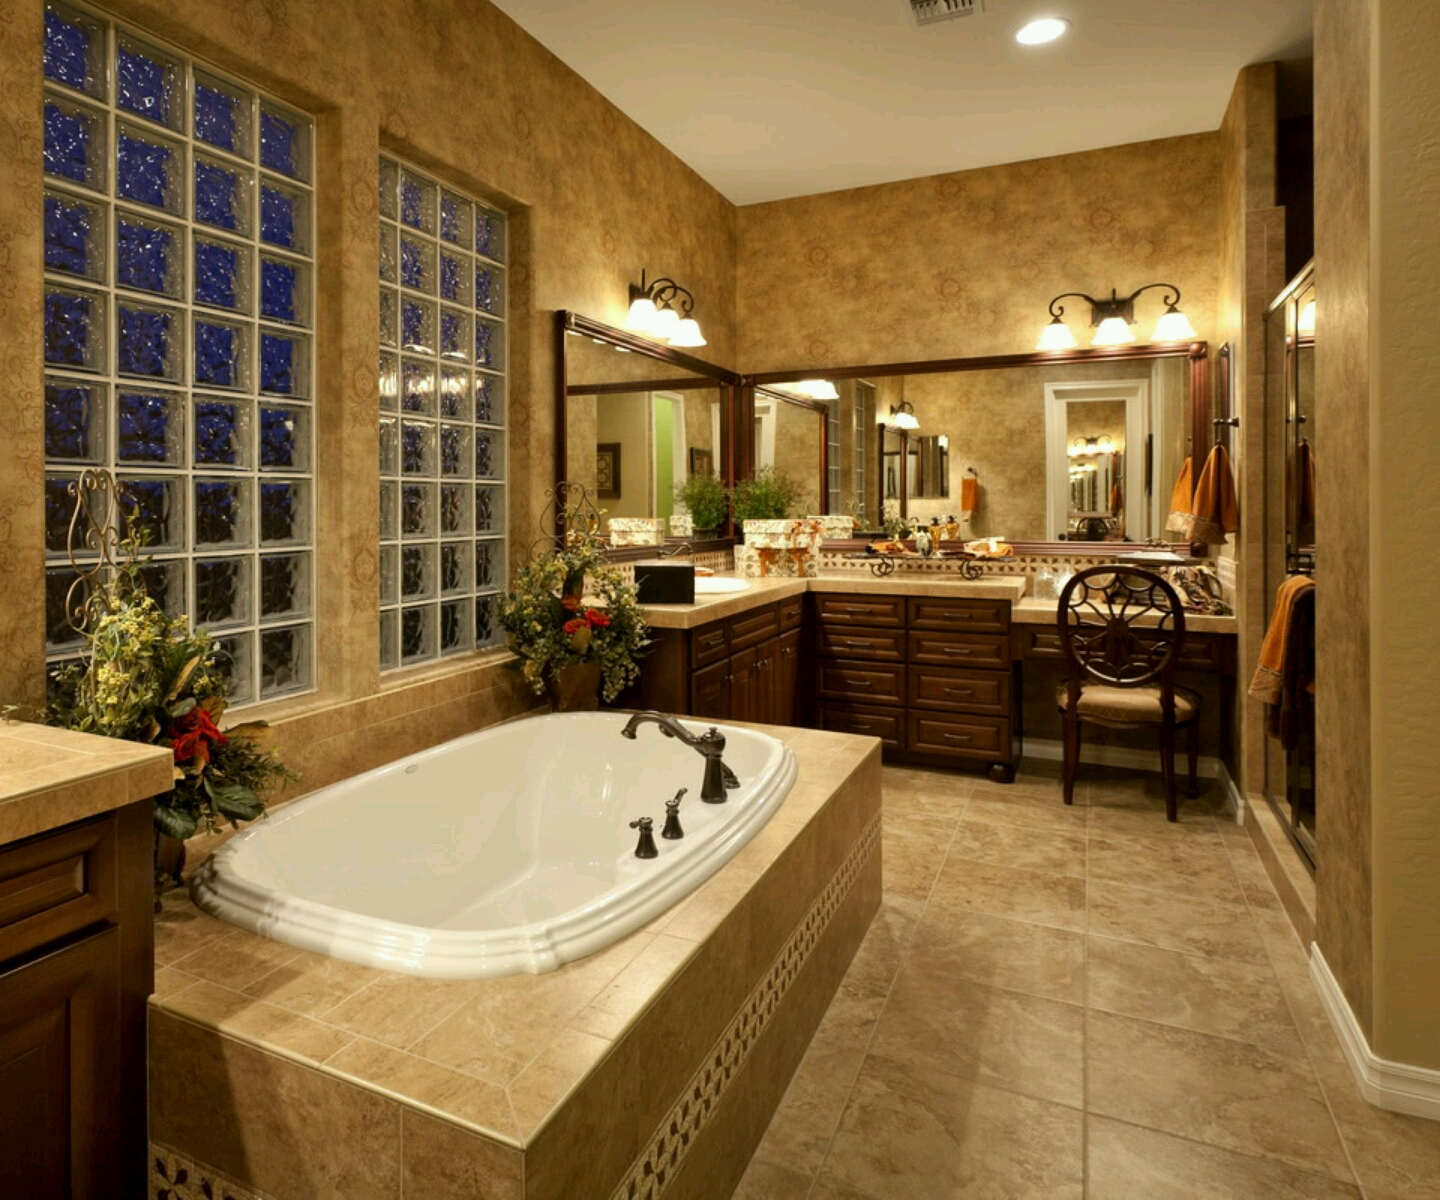 30 cool ideas and pictures custom shower tile designs on Bathroom Ideas Photo Gallery  id=62828